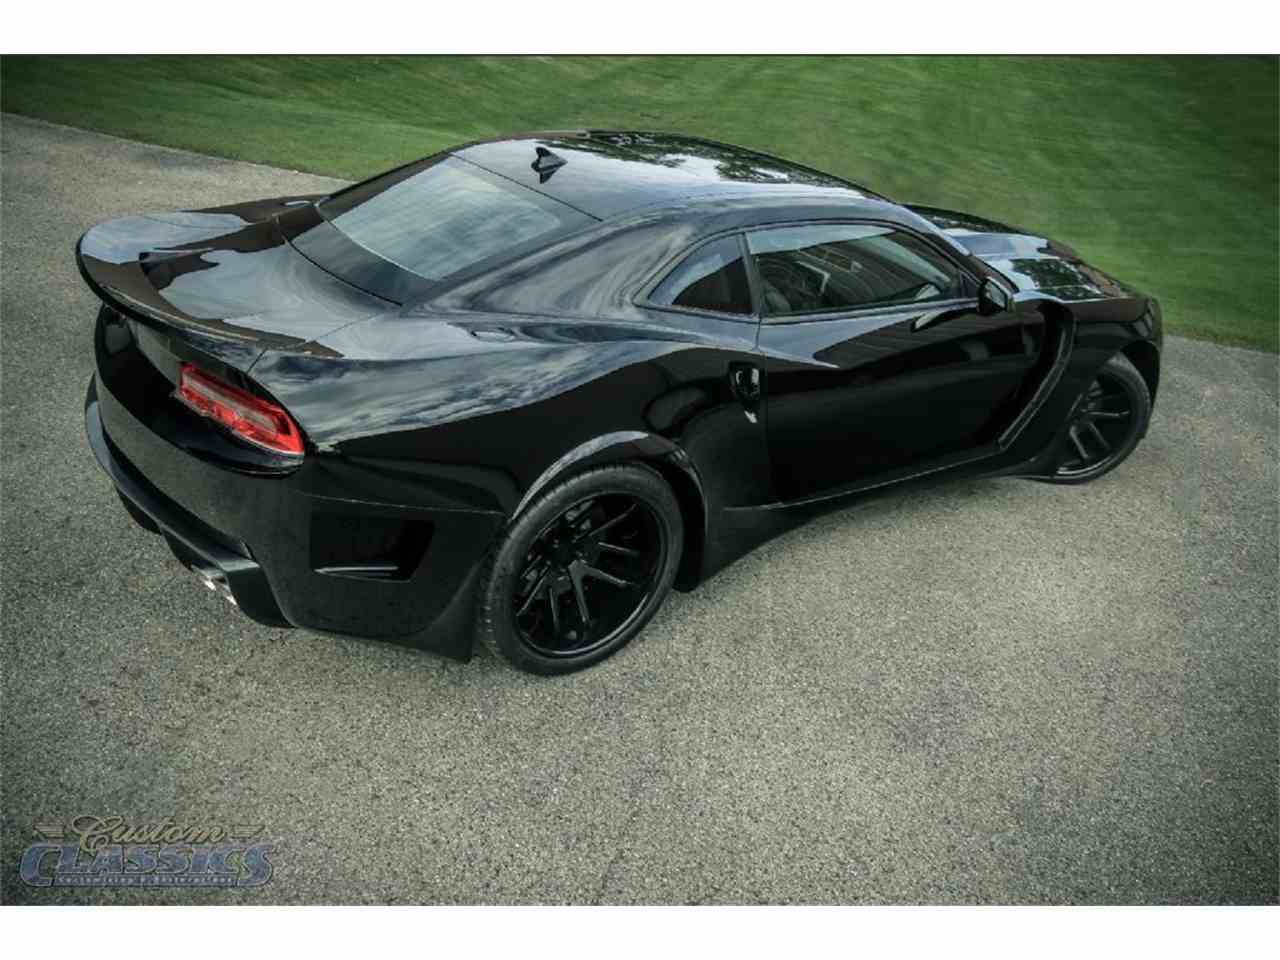 Large Picture of '14 Camaro ZL-1 Widebody located in Illinois - $120,000.00 Offered by Custom Classics - HK4B